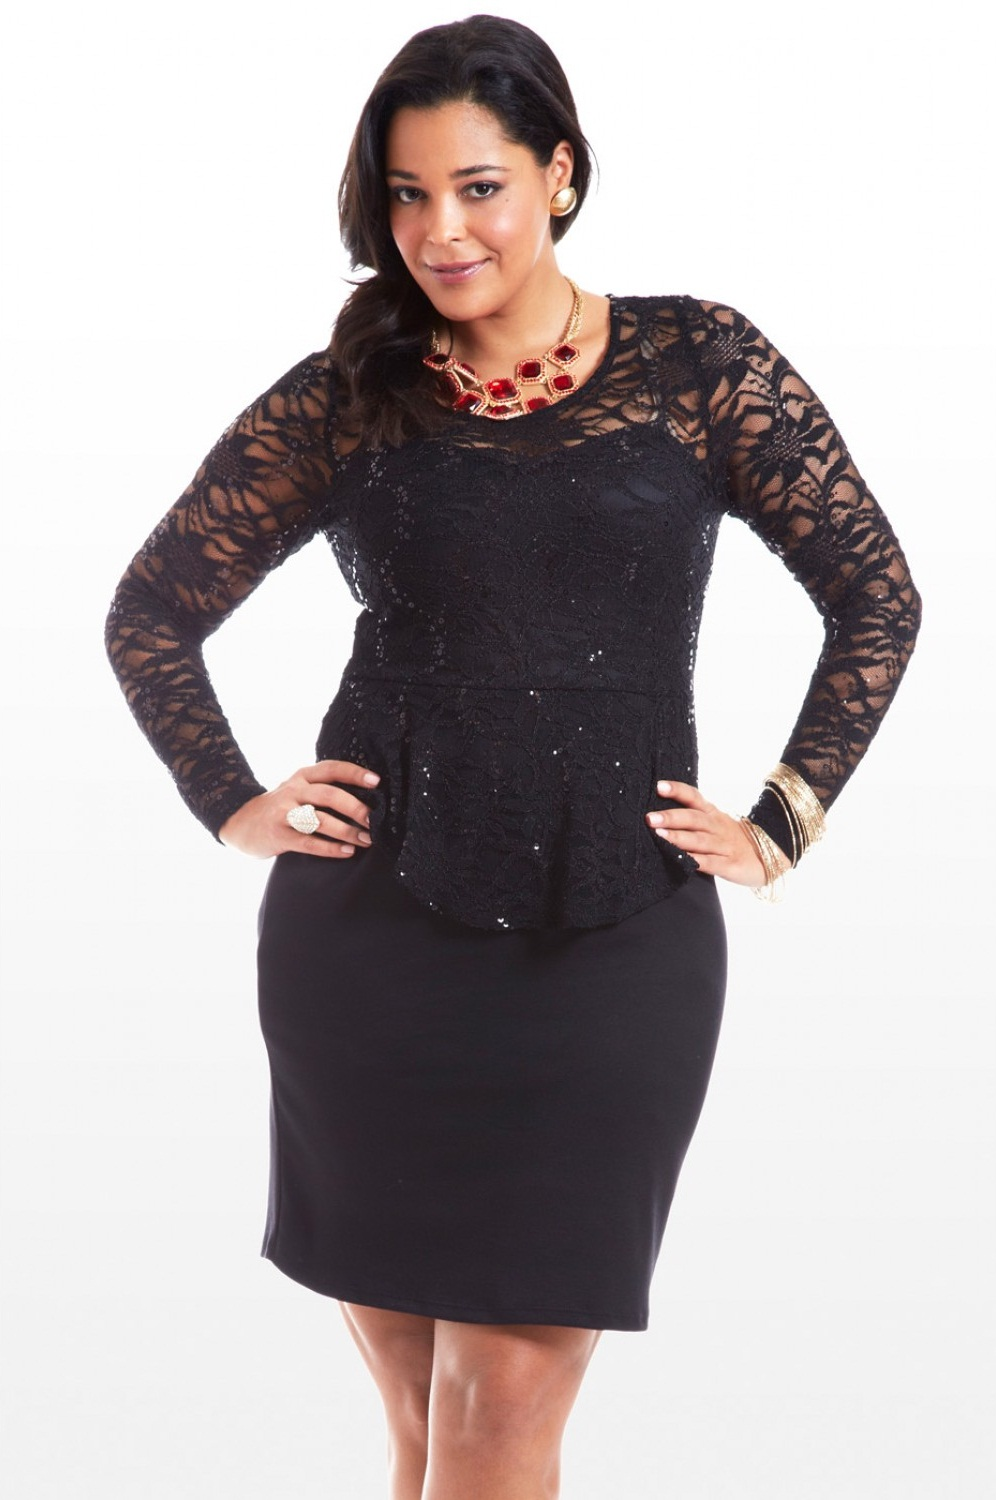 tubidyindir.ga is the leading online store for plus size women. Shop plus size clothing, sizes 14 to Here at tubidyindir.ga, we carry trendy styles and sexy elegant fashions for plus size women. We carry a wide selection of the latest styles inspired from Hollywood to Runway Fashion. We are dedicated to provide plus size clothing to fit your curves the way it should.